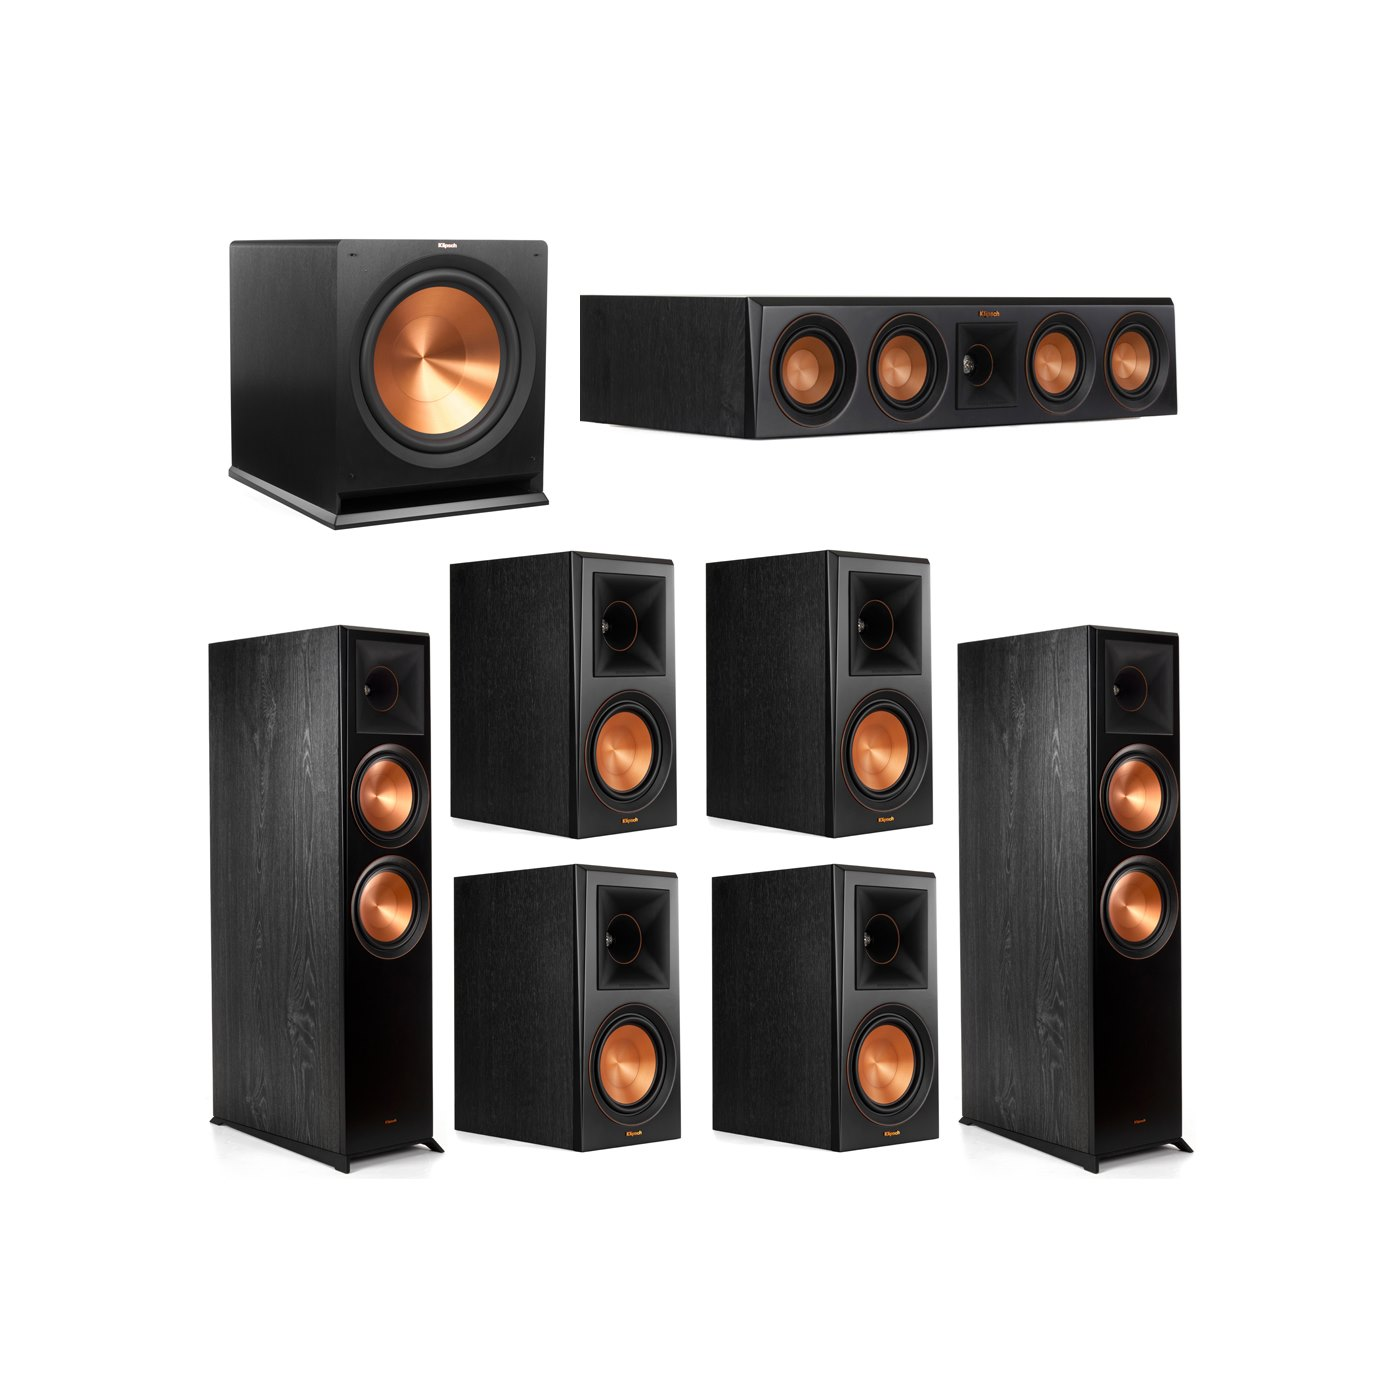 Klipsch 7.1 System with 2 RP-8000F Floorstanding Speakers, 1 Klipsch RP-404C Center Speaker, 4 Klipsch RP-600M Surround Speakers, 1 Klipsch R-115SW Subwoofer